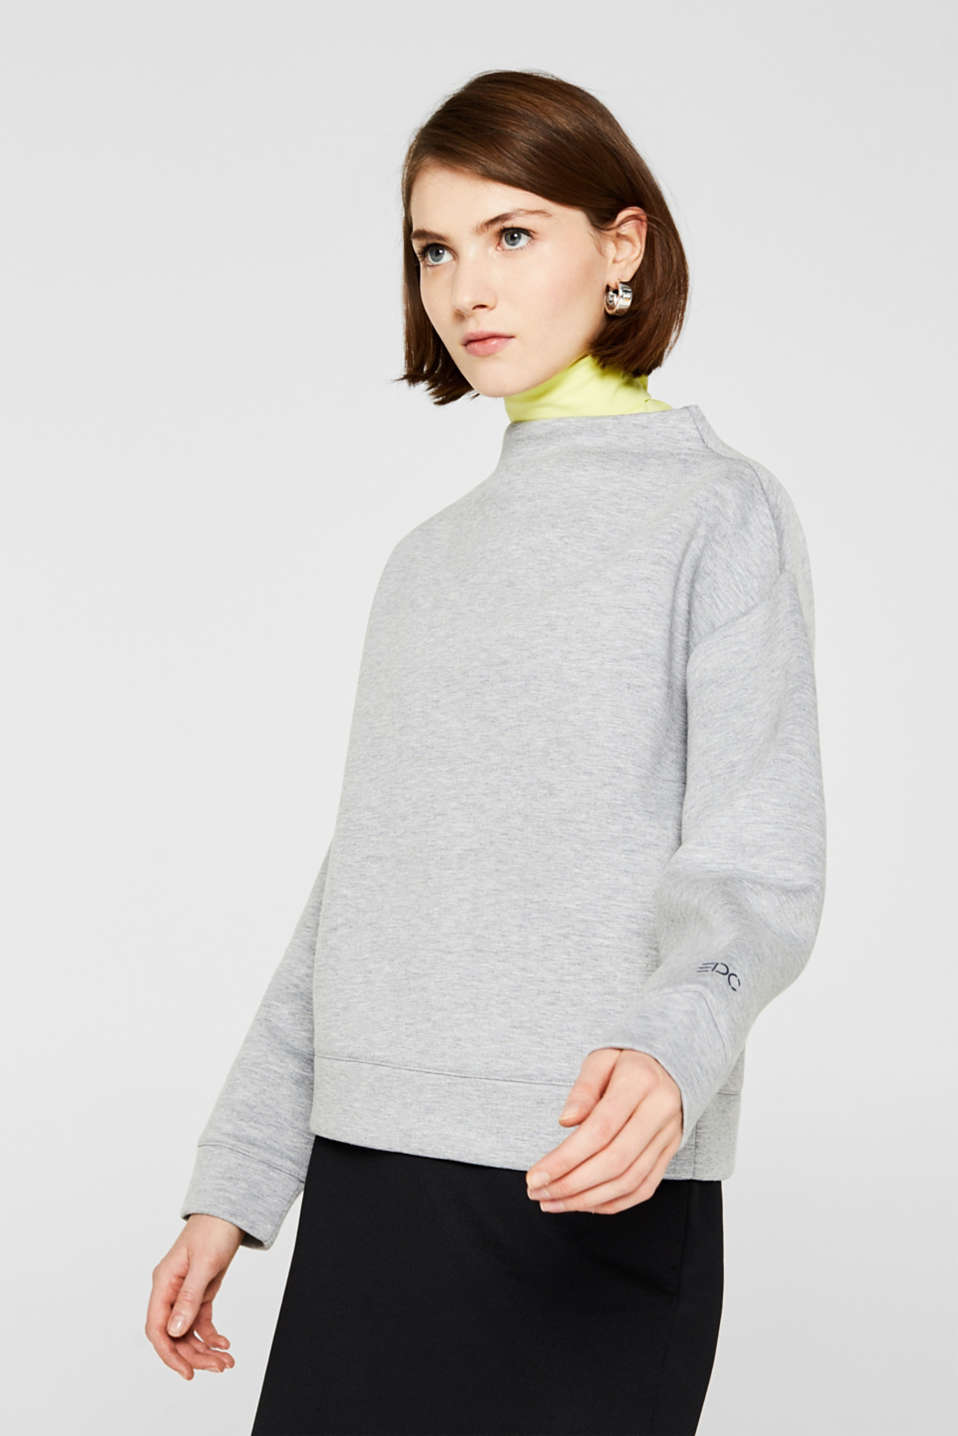 Compact sweatshirt with a stand-up collar, LIGHT GREY 5, detail image number 0